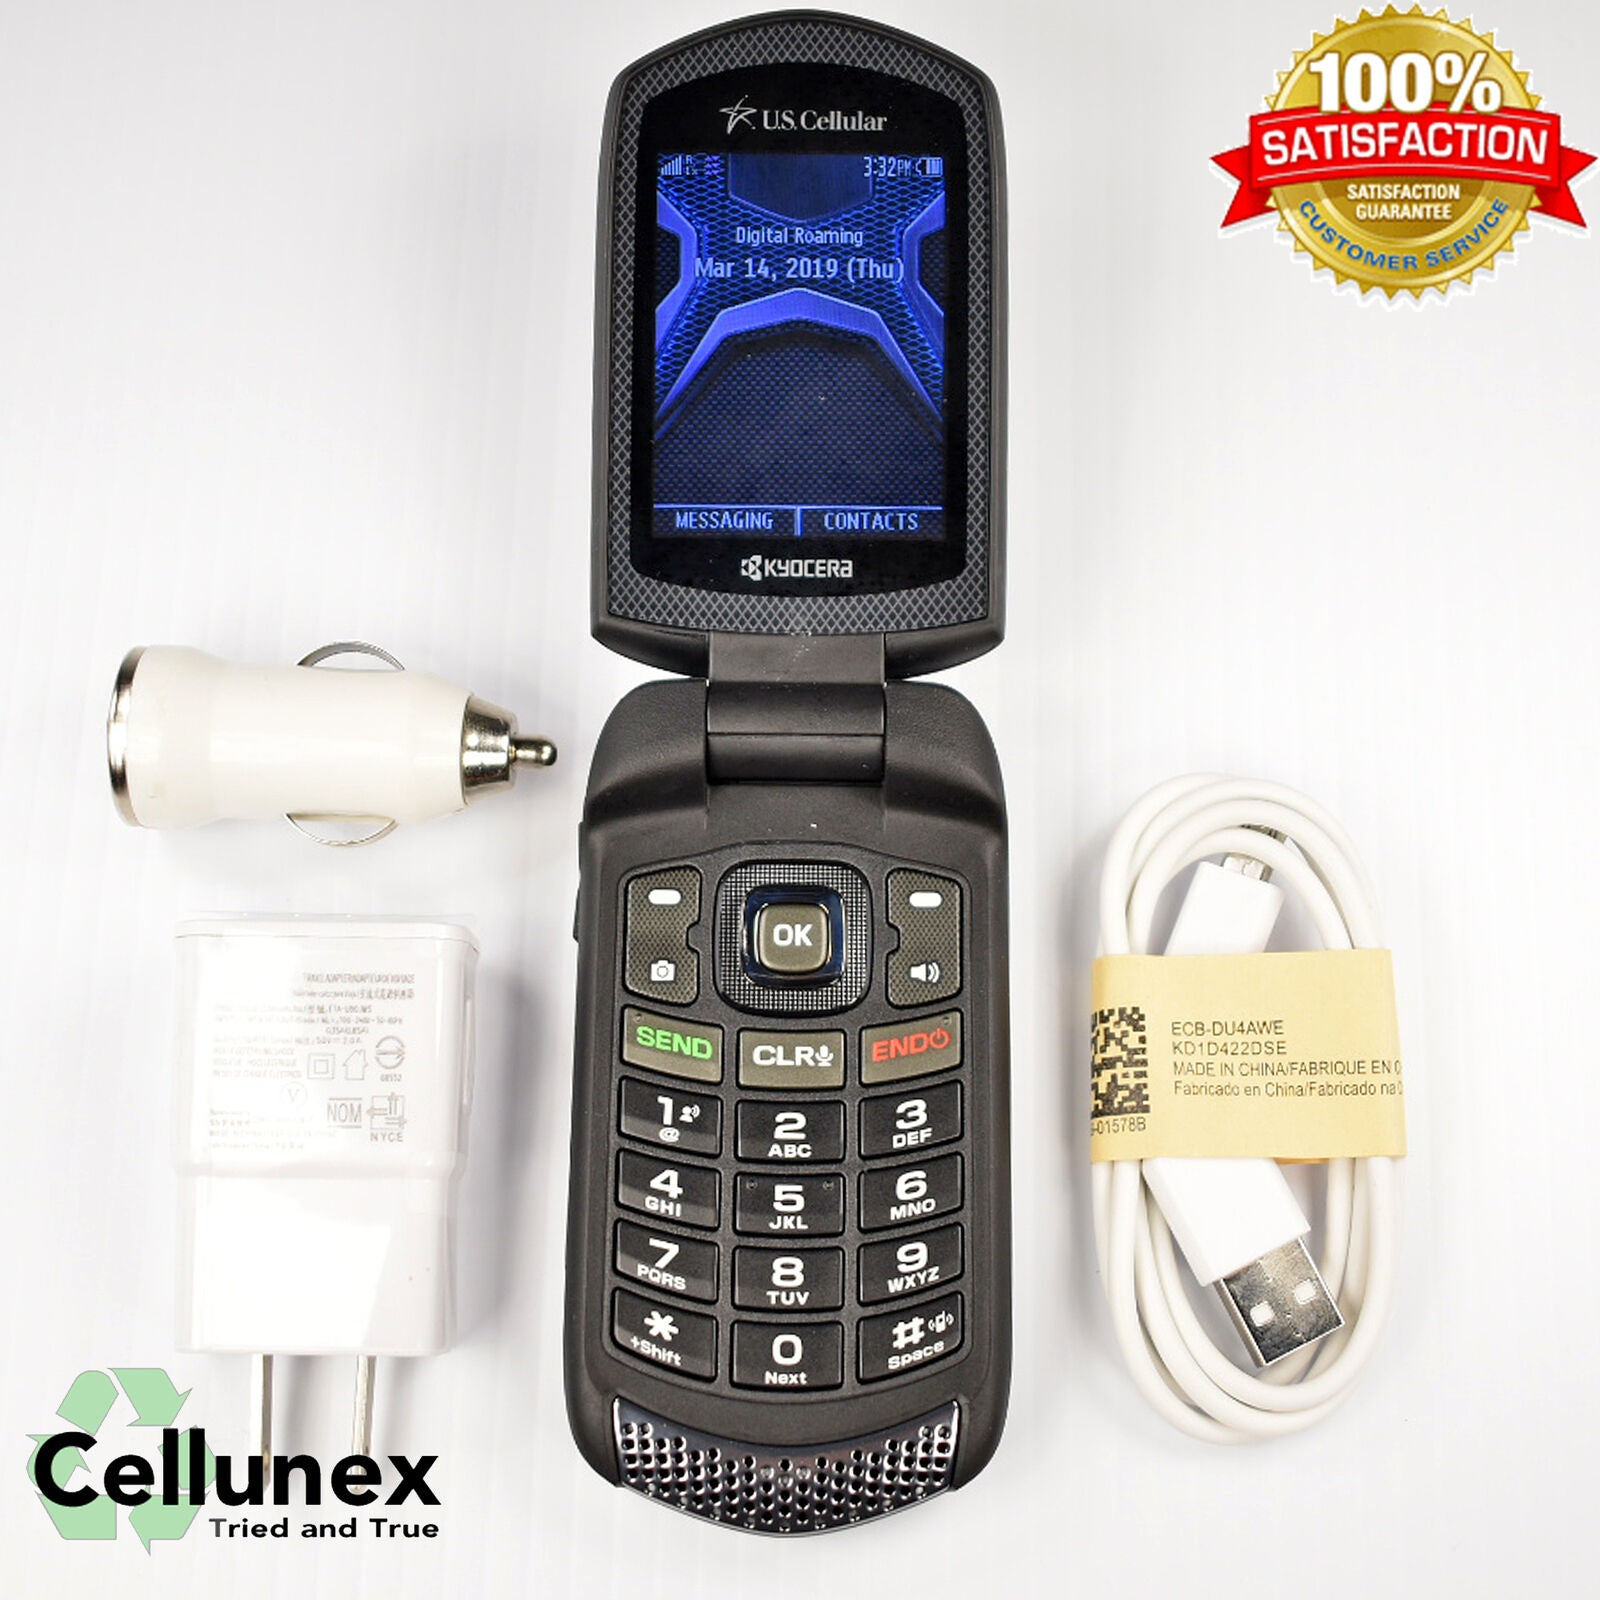 Kyocera E4510 DuraXA (nTelos) Rugged Flip Phone - High Speed 3G CDMA